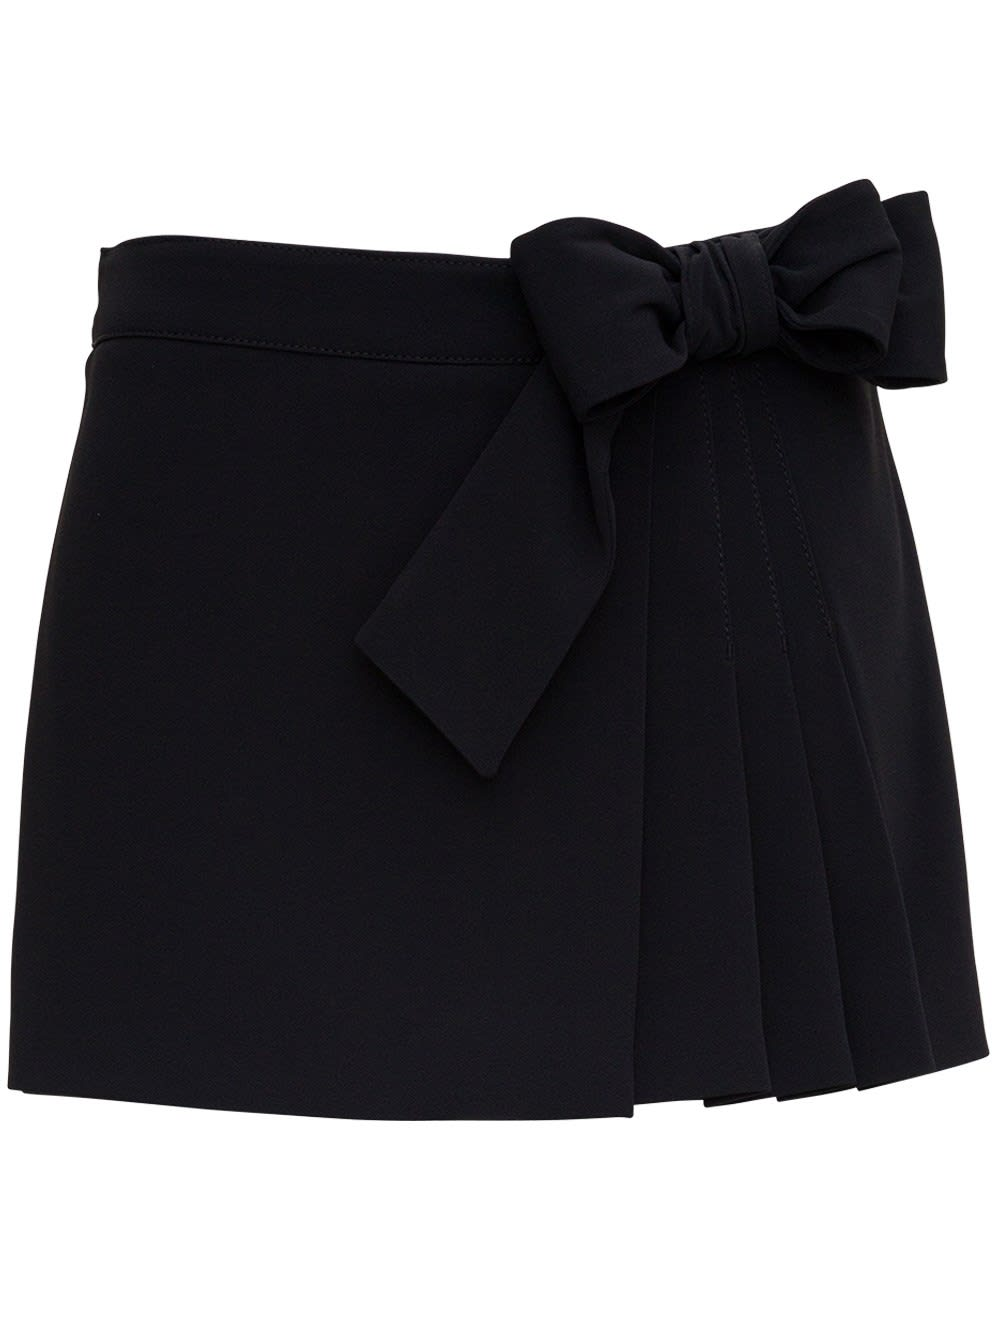 Red Valentino Divided Mid Skirt With Bow Detail In Black